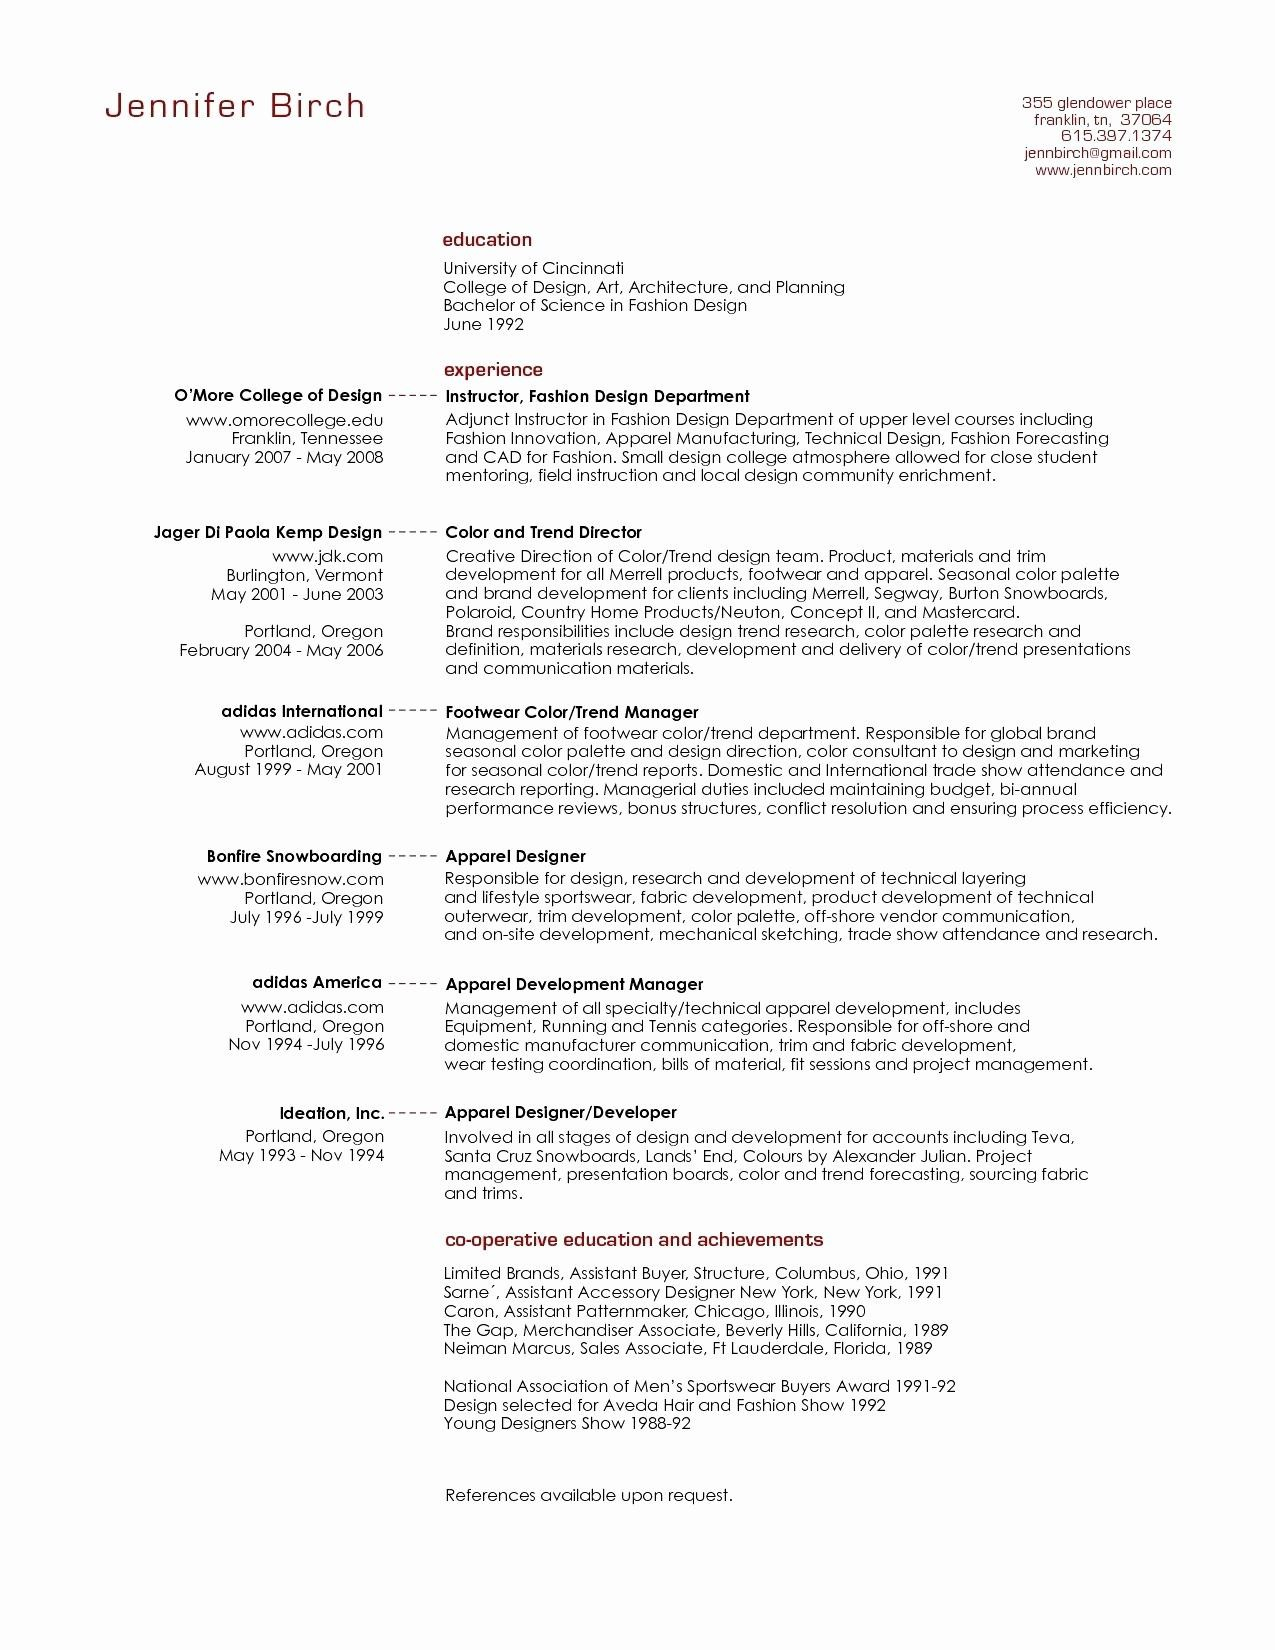 core competencies resume examples example-Core petencies Resume Luxury 43 Unique Core Petencies Resume Examples Resume Templates Ideas Core petencies 9-d